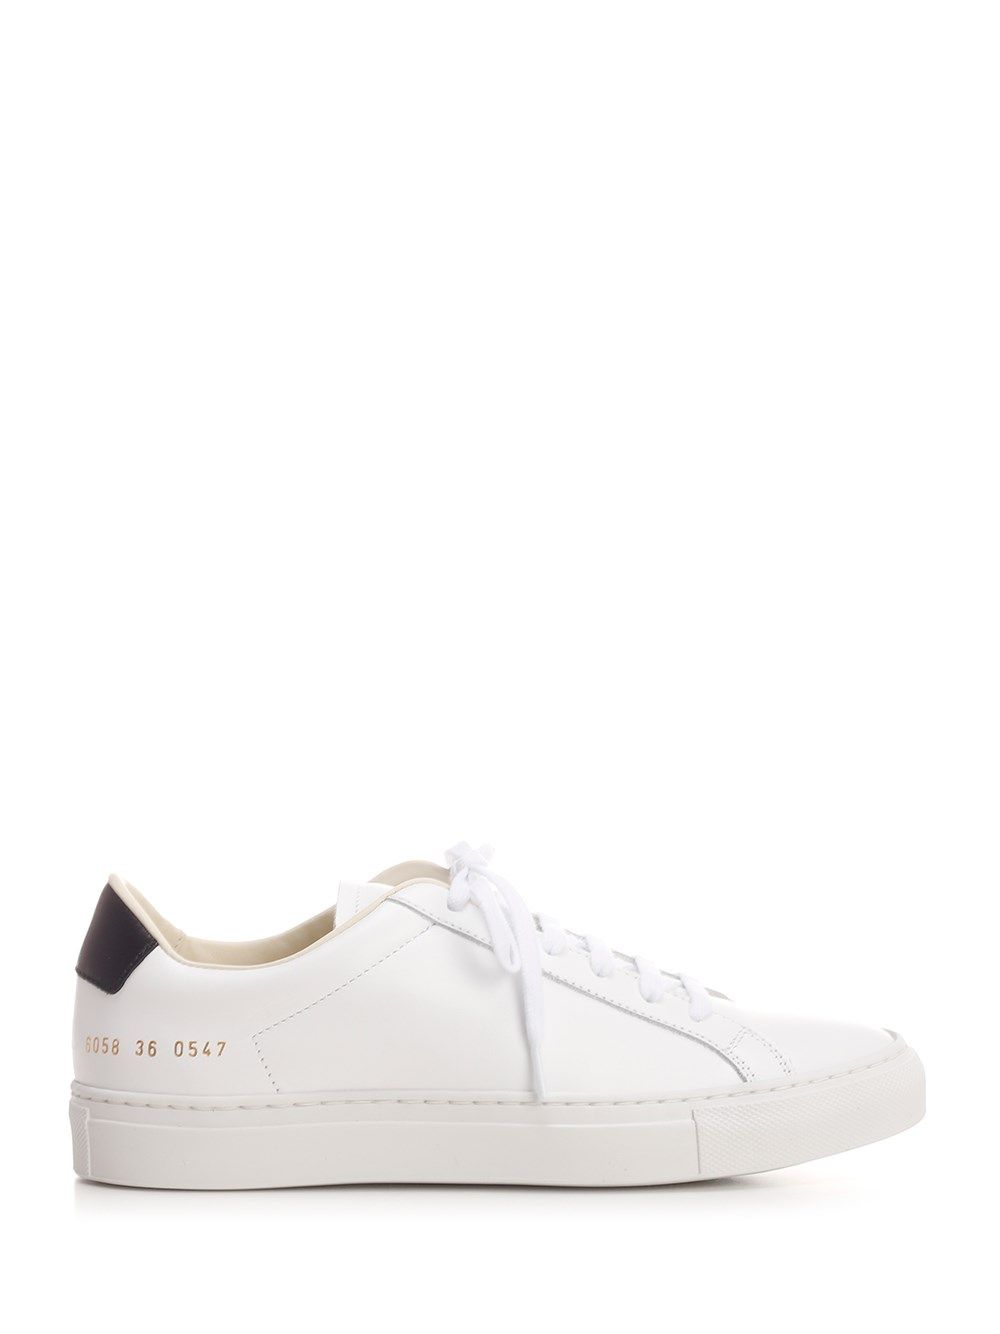 Common Projects Low tops COMMON PROJECTS WOMEN'S 60580547 WHITE OTHER MATERIALS SNEAKERS